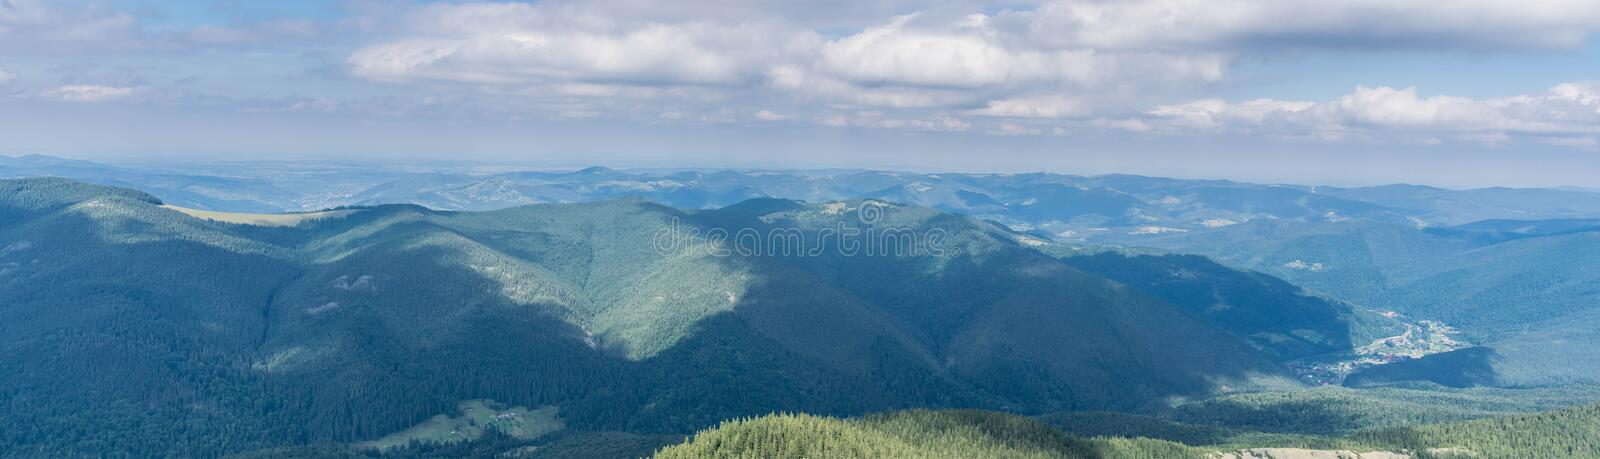 Panoramic view of the Carpathian Mountains, Eastern Europe stock images